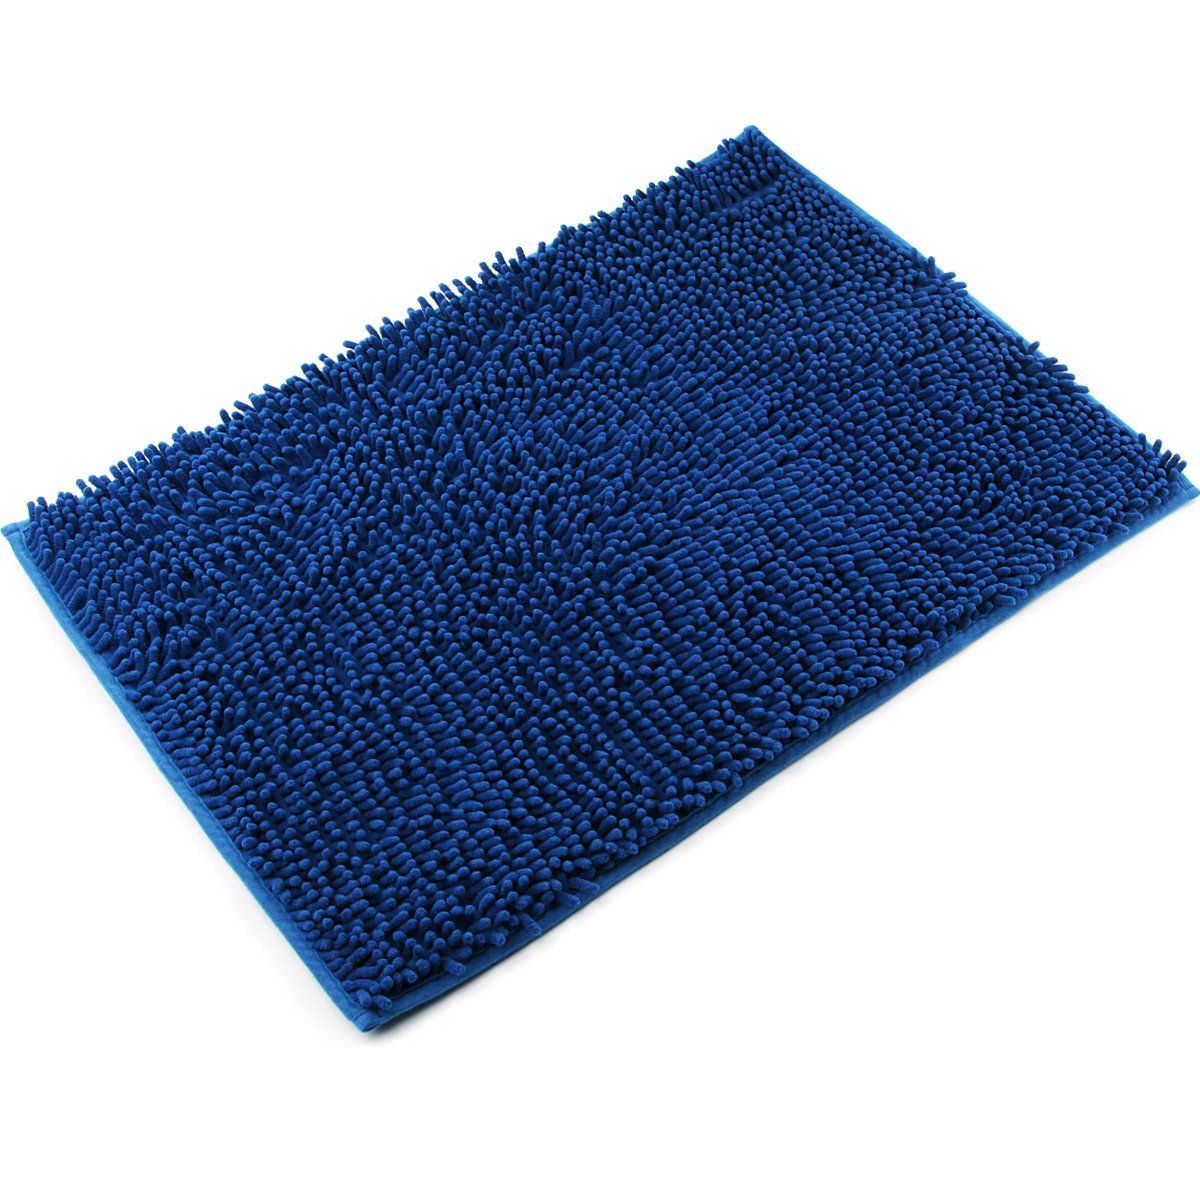 VDOMUS Non-slip Bath Mat Microfiber Bathroom Mats Shower